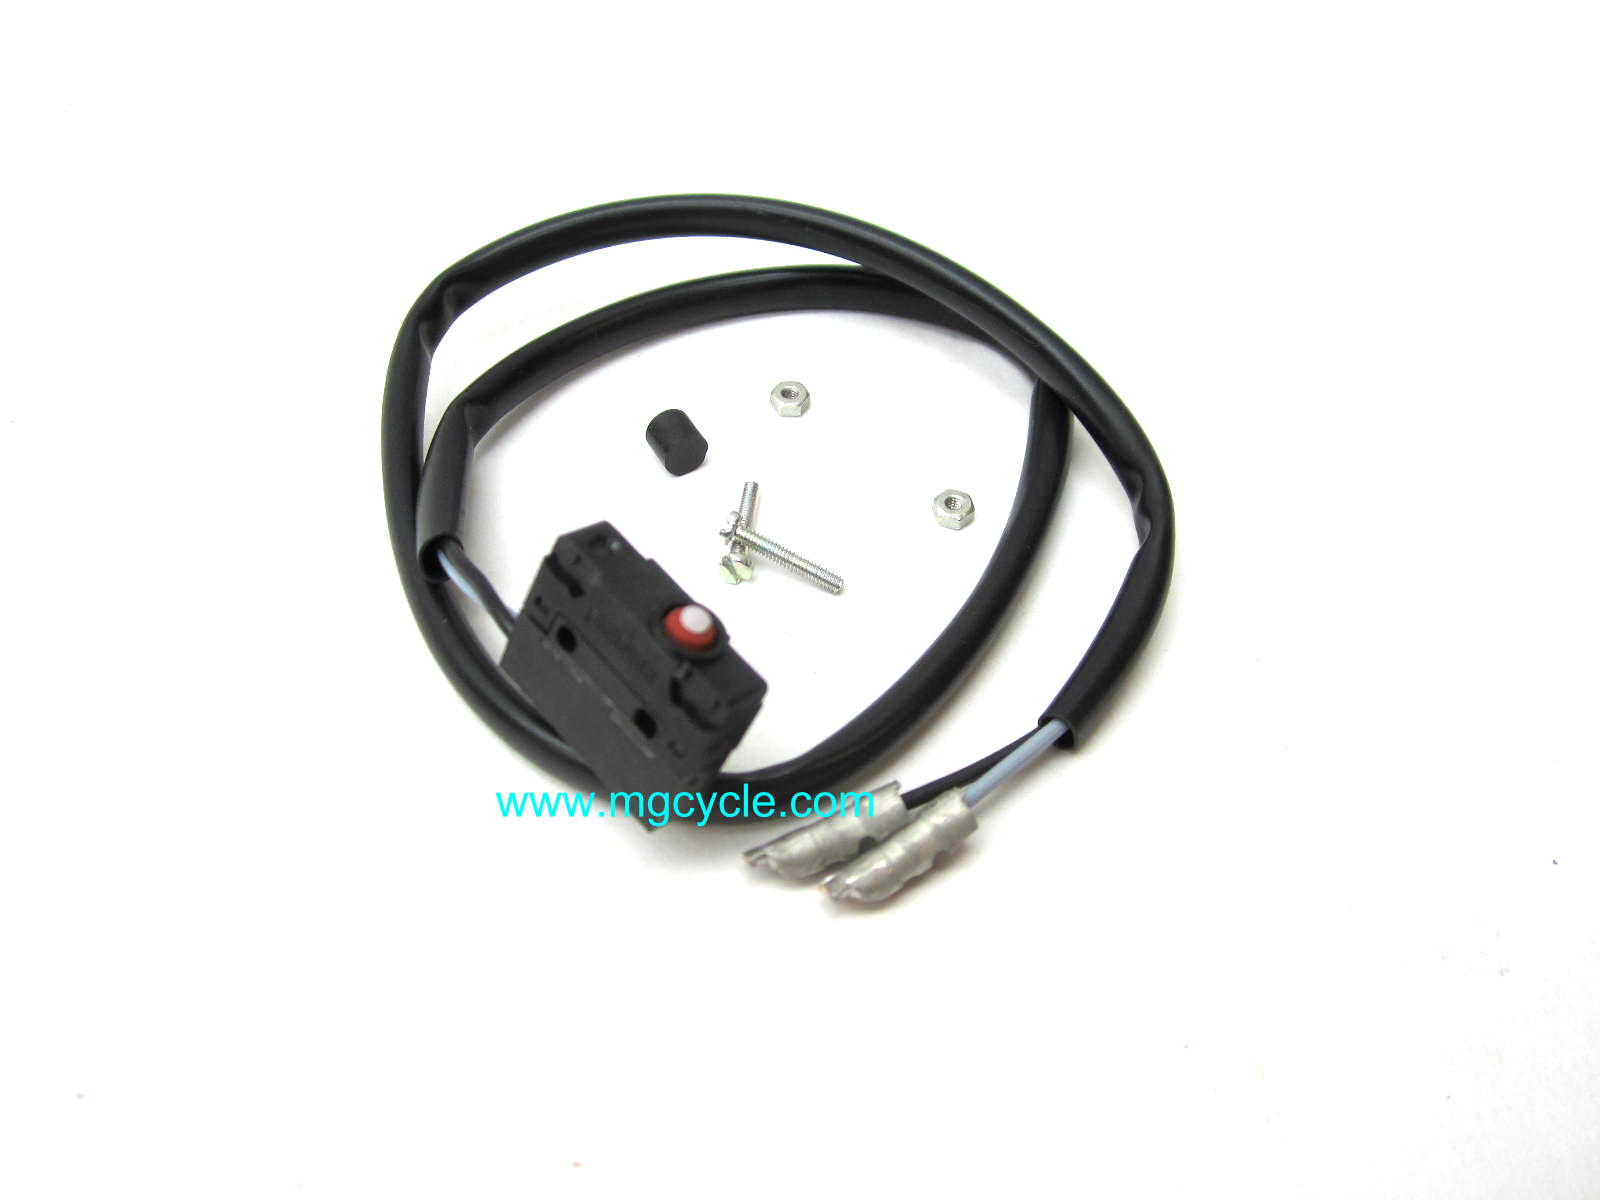 Microswitch for clutch/brake V11 Sport/LeMans 1000S GU01530581